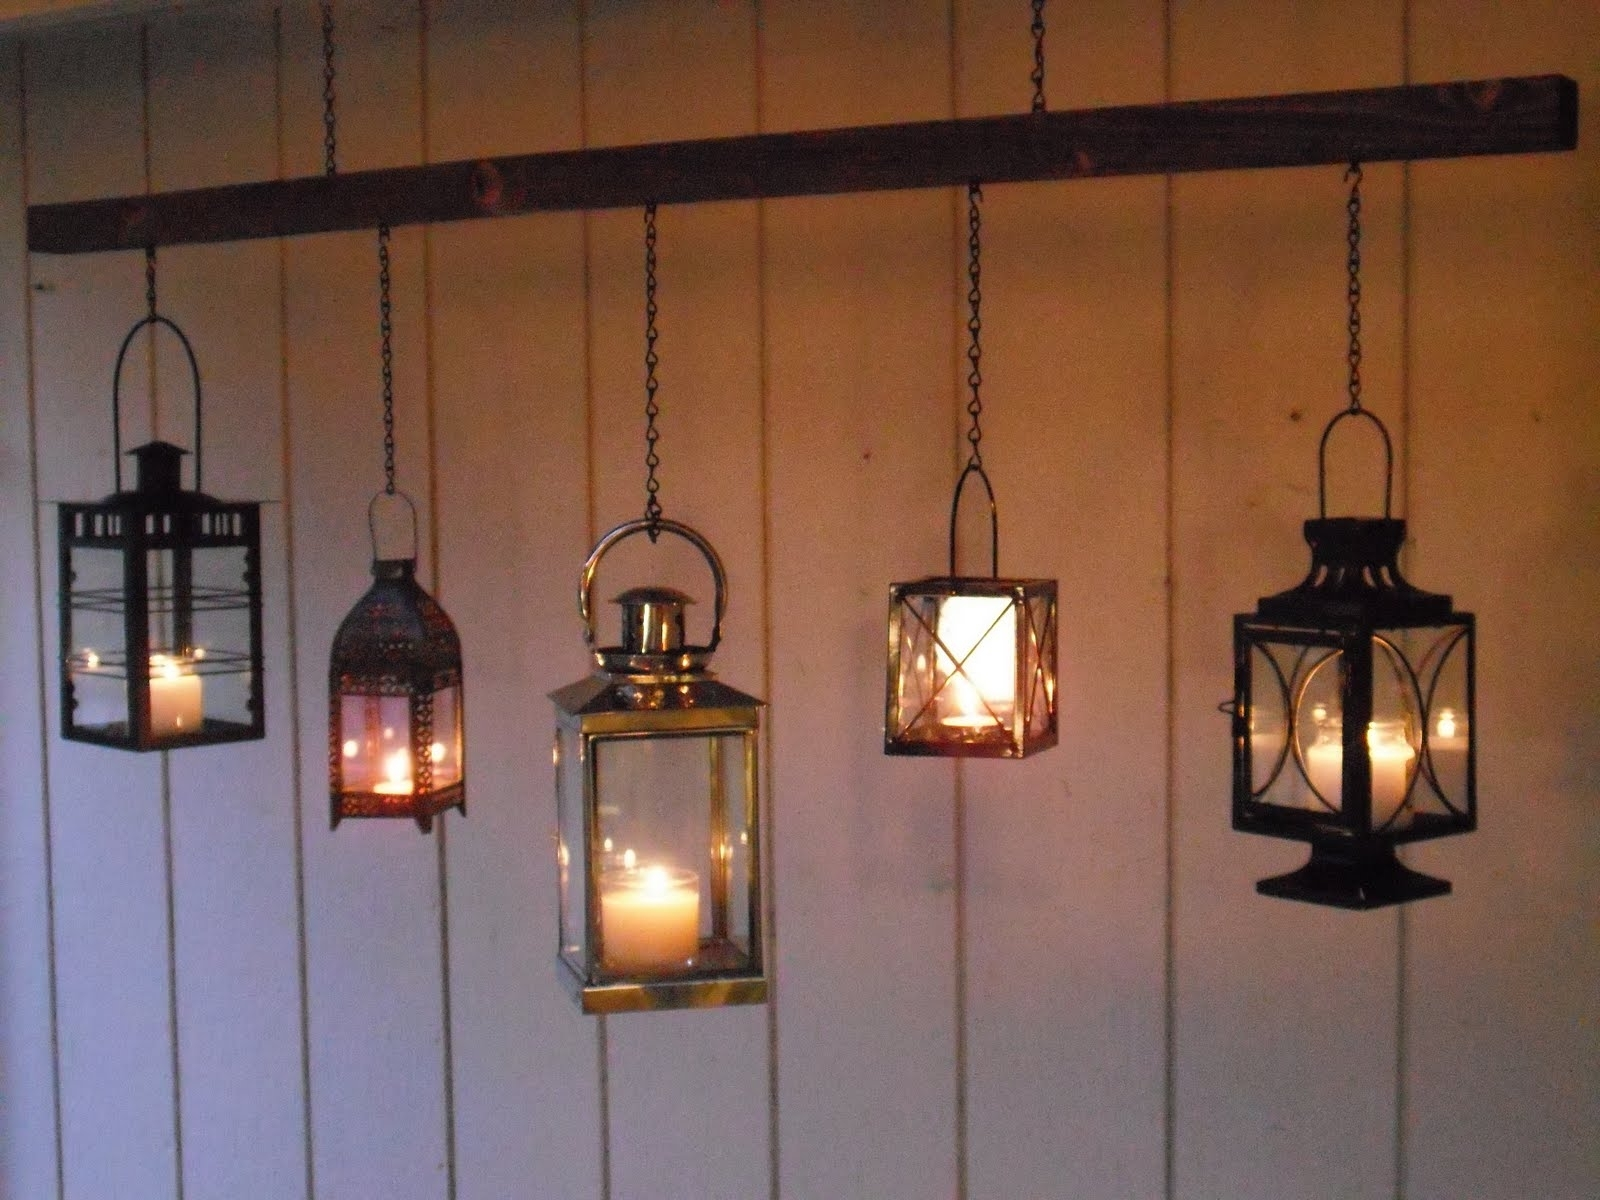 Newest Wedding Decoration Hanging Candle Lanterns – Matt And Jentry Home Design Inside Outdoor Hanging Lanterns Candles (View 13 of 20)